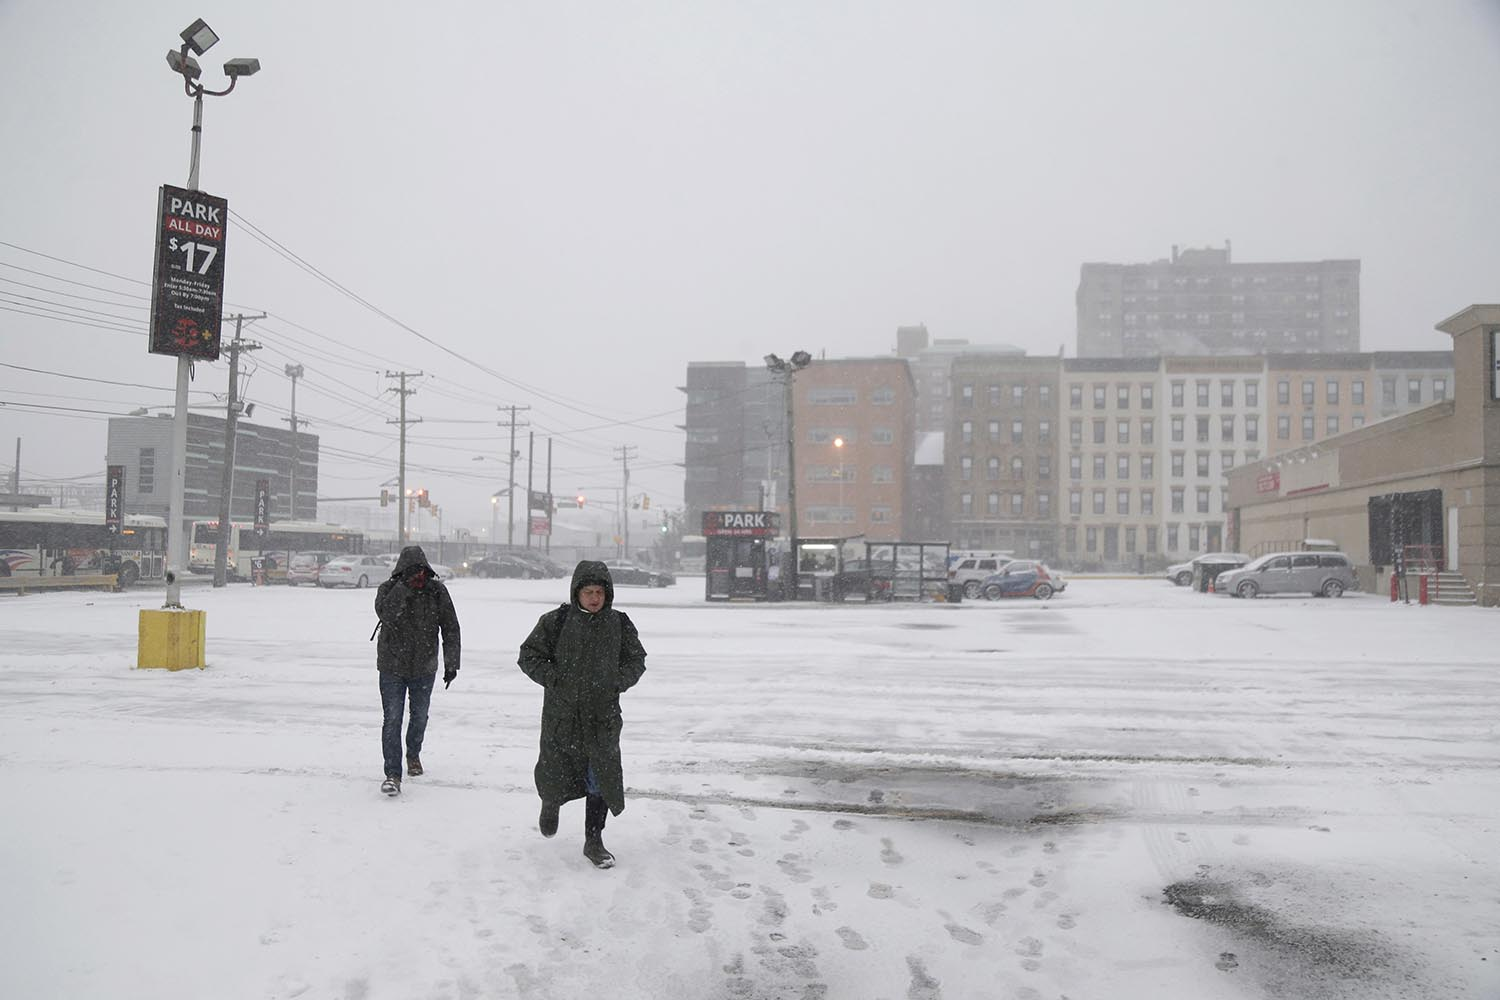 "<div class=""meta image-caption""><div class=""origin-logo origin-image ap""><span>AP</span></div><span class=""caption-text"">People makes their way across an almost empty parking lot in Hoboken, N.J., Thursday, Jan. 4, 2018. (AP Photo/Seth Wenig)</span></div>"